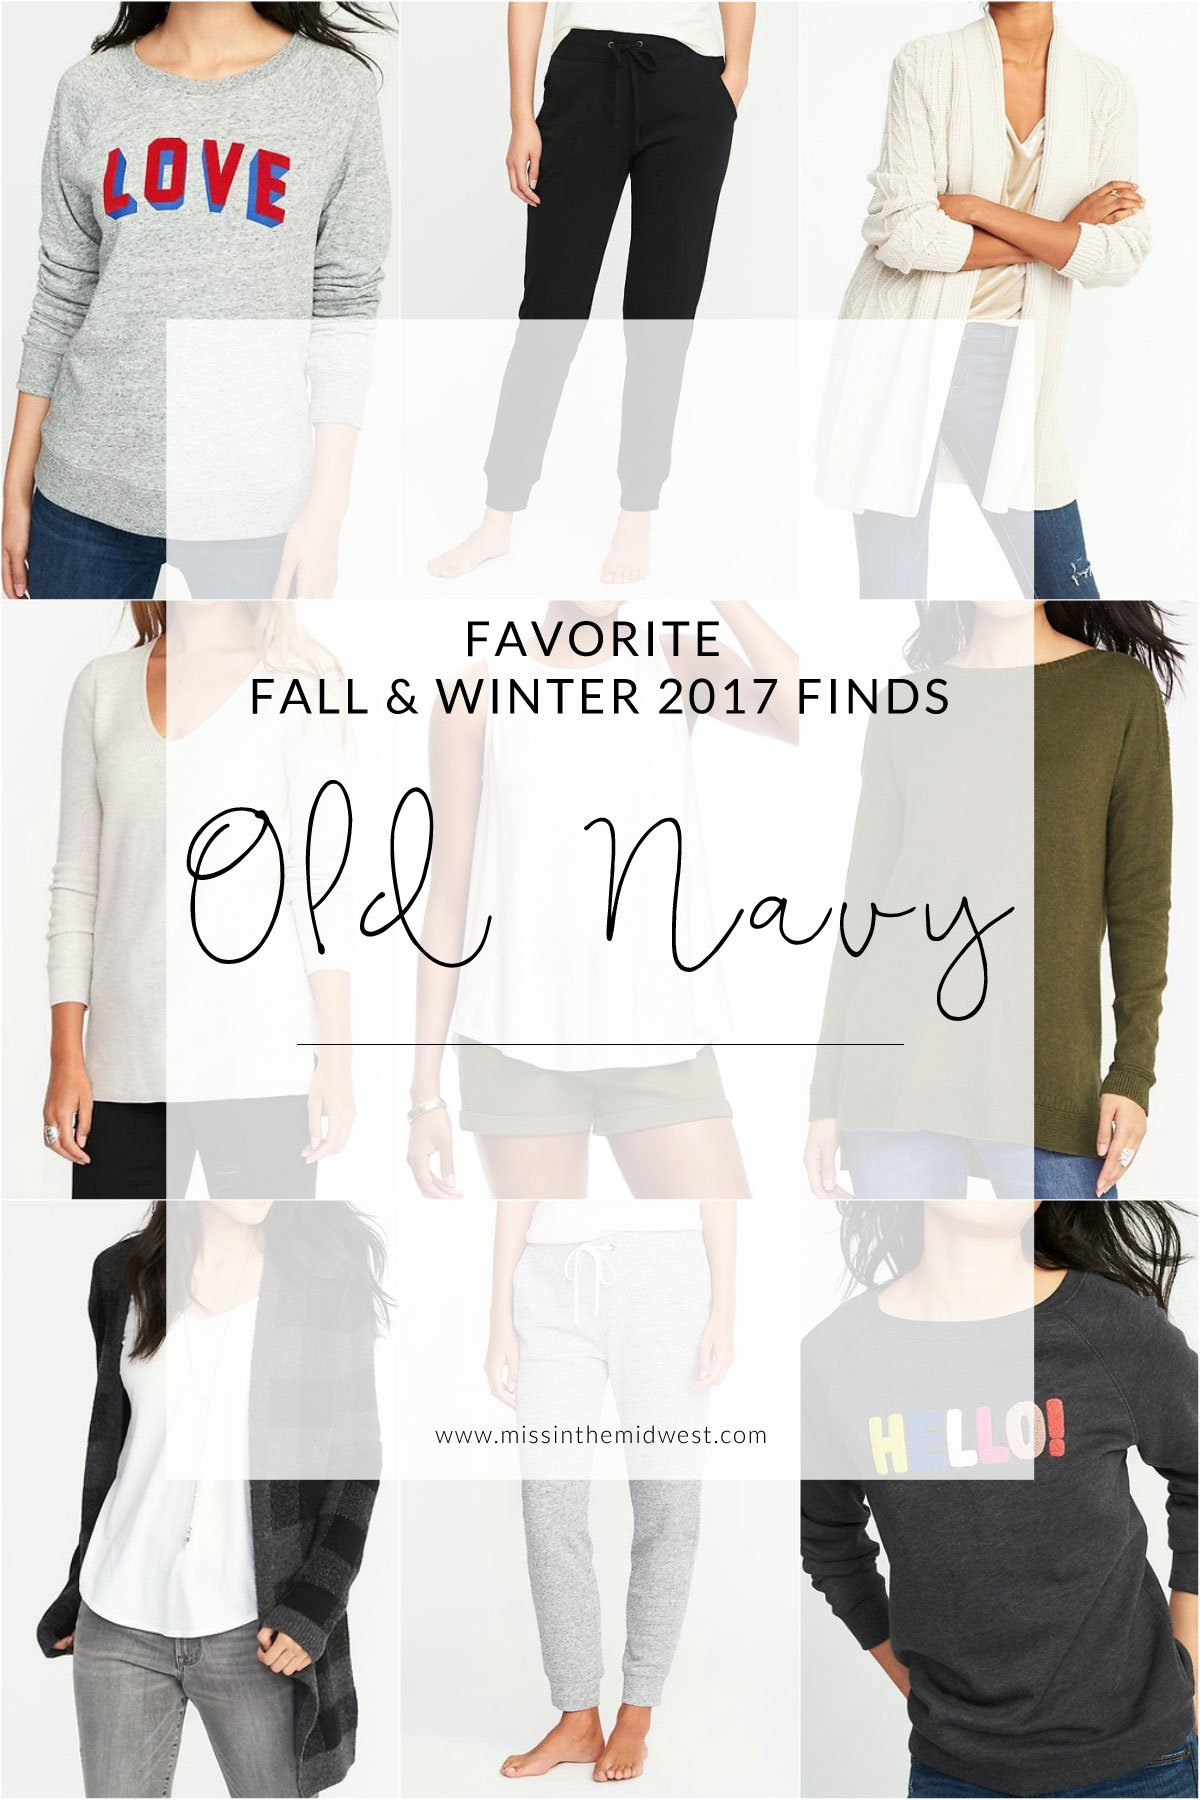 Favorite Fall and Winter Finds from Old Navy